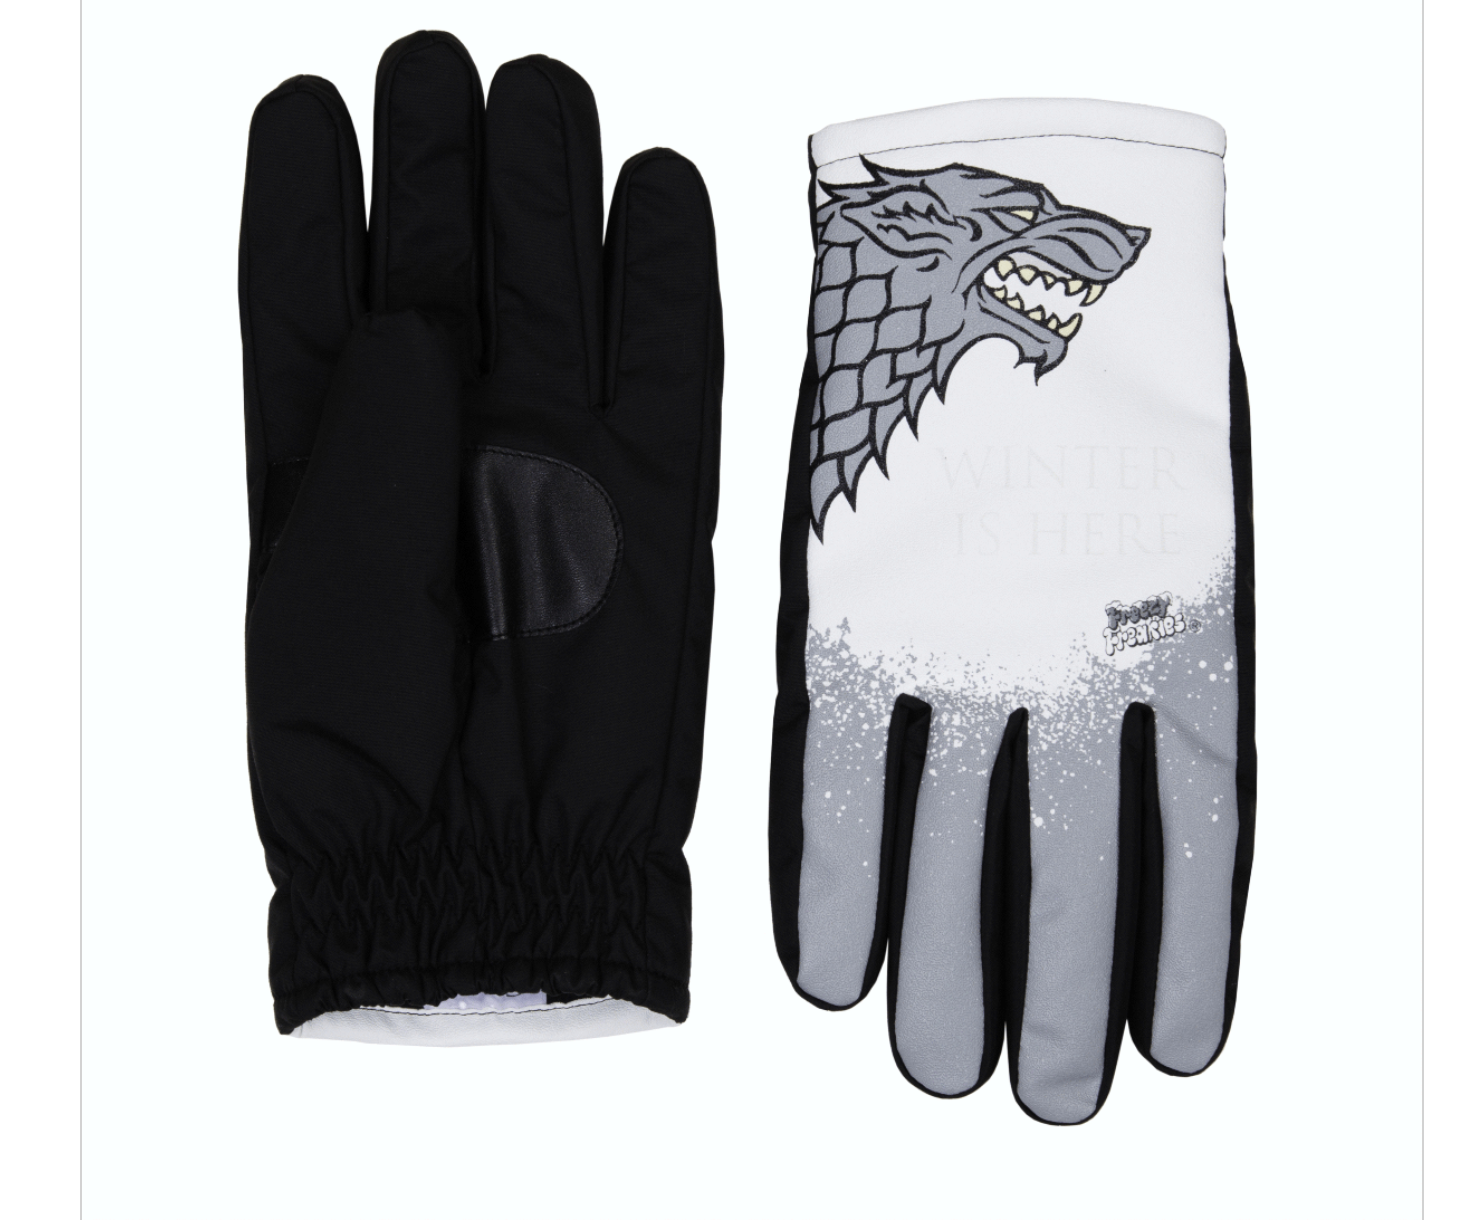 Stuff We Love: Game of Thrones gloves let you know winter is coming, but only when it's cold